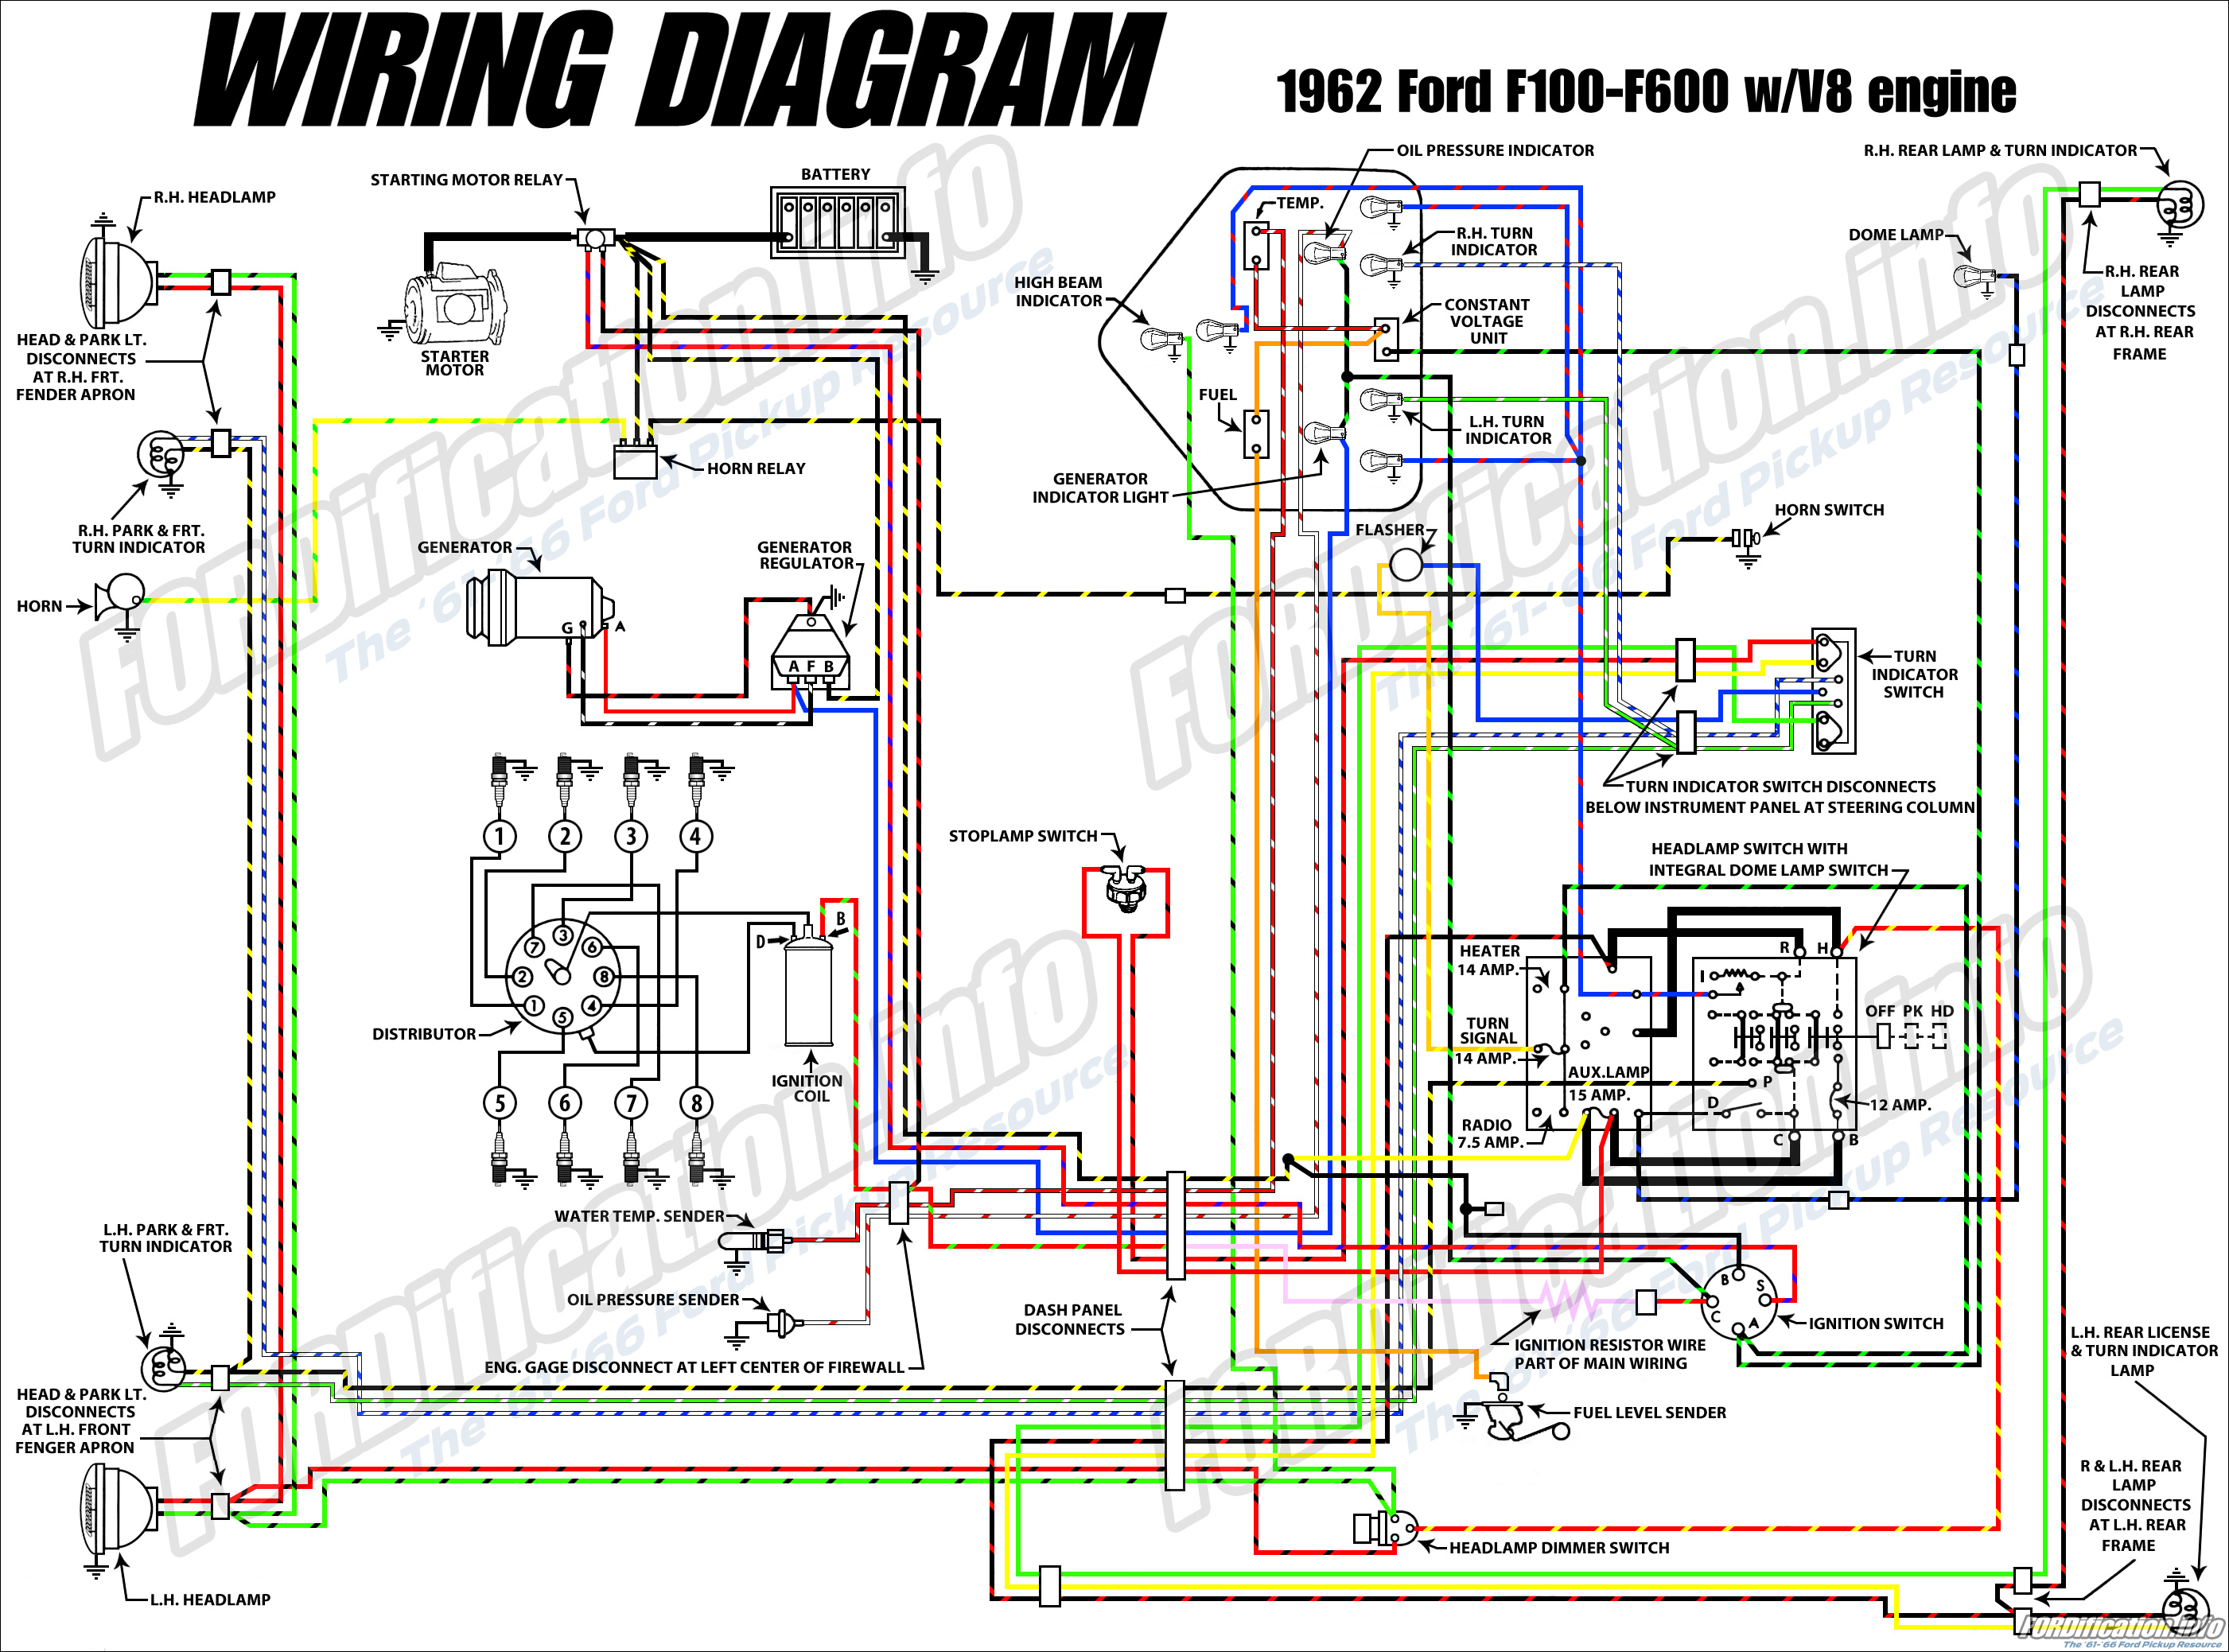 1962fordtruck_masterwiring 1962 ford truck wiring diagrams fordification info the '61 '66 ford truck wiring schematics at bayanpartner.co